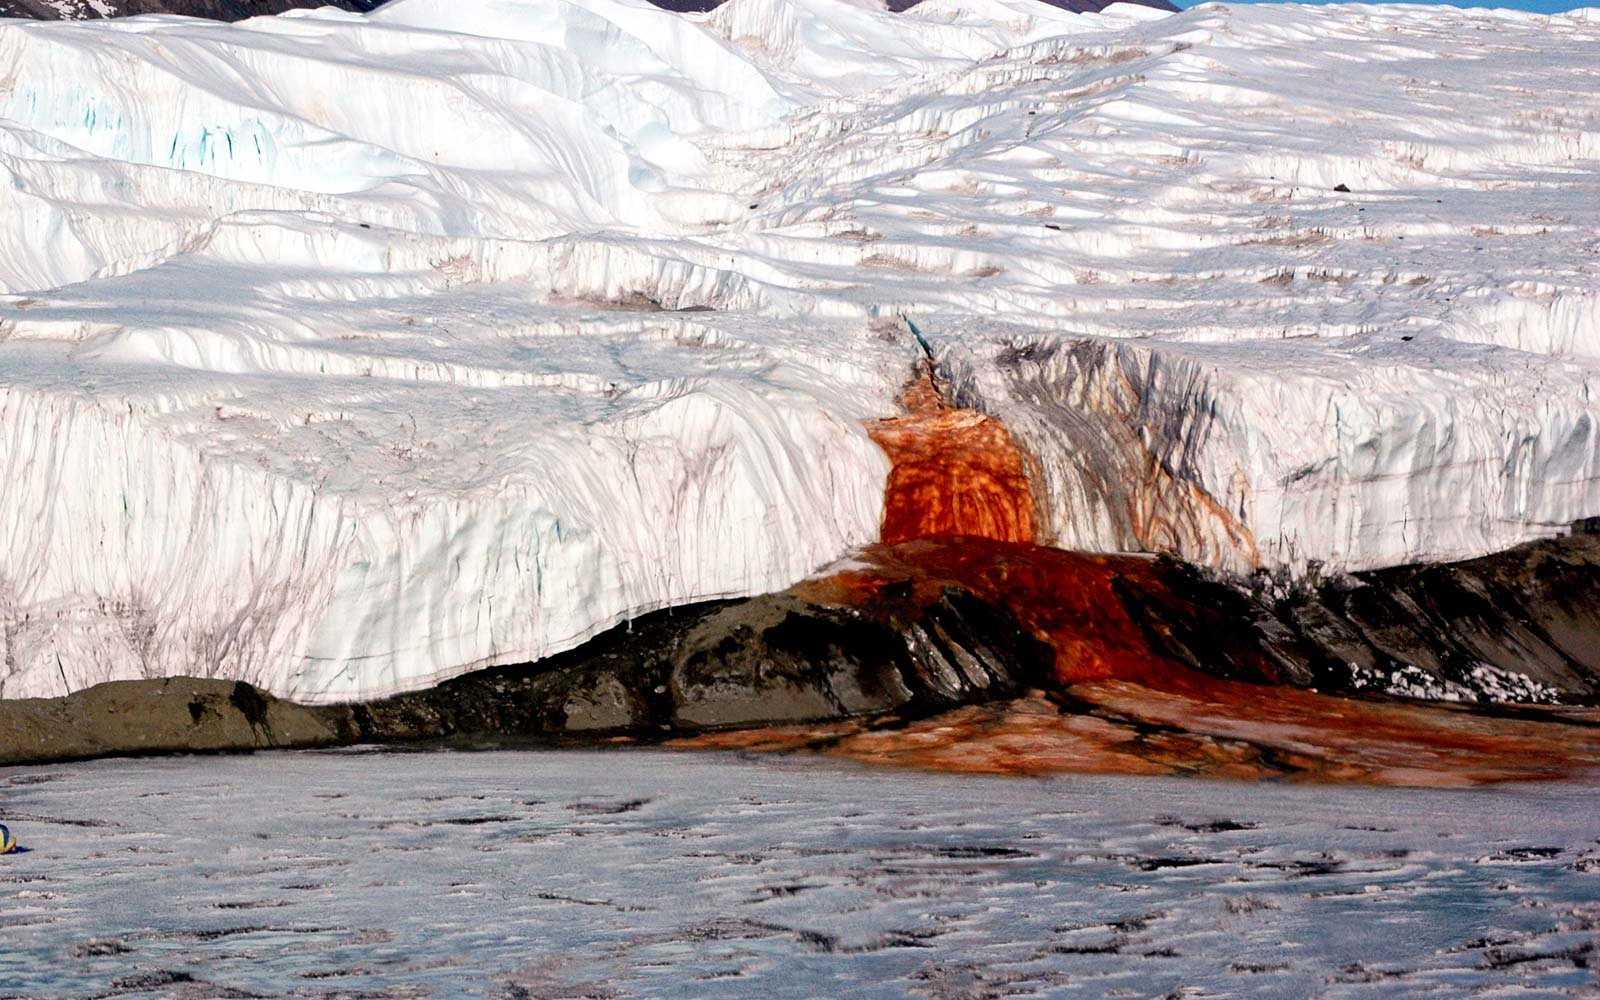 The Blood Falls seeps from the end of the Taylor Glacier into Lake Bonney, Antarctica